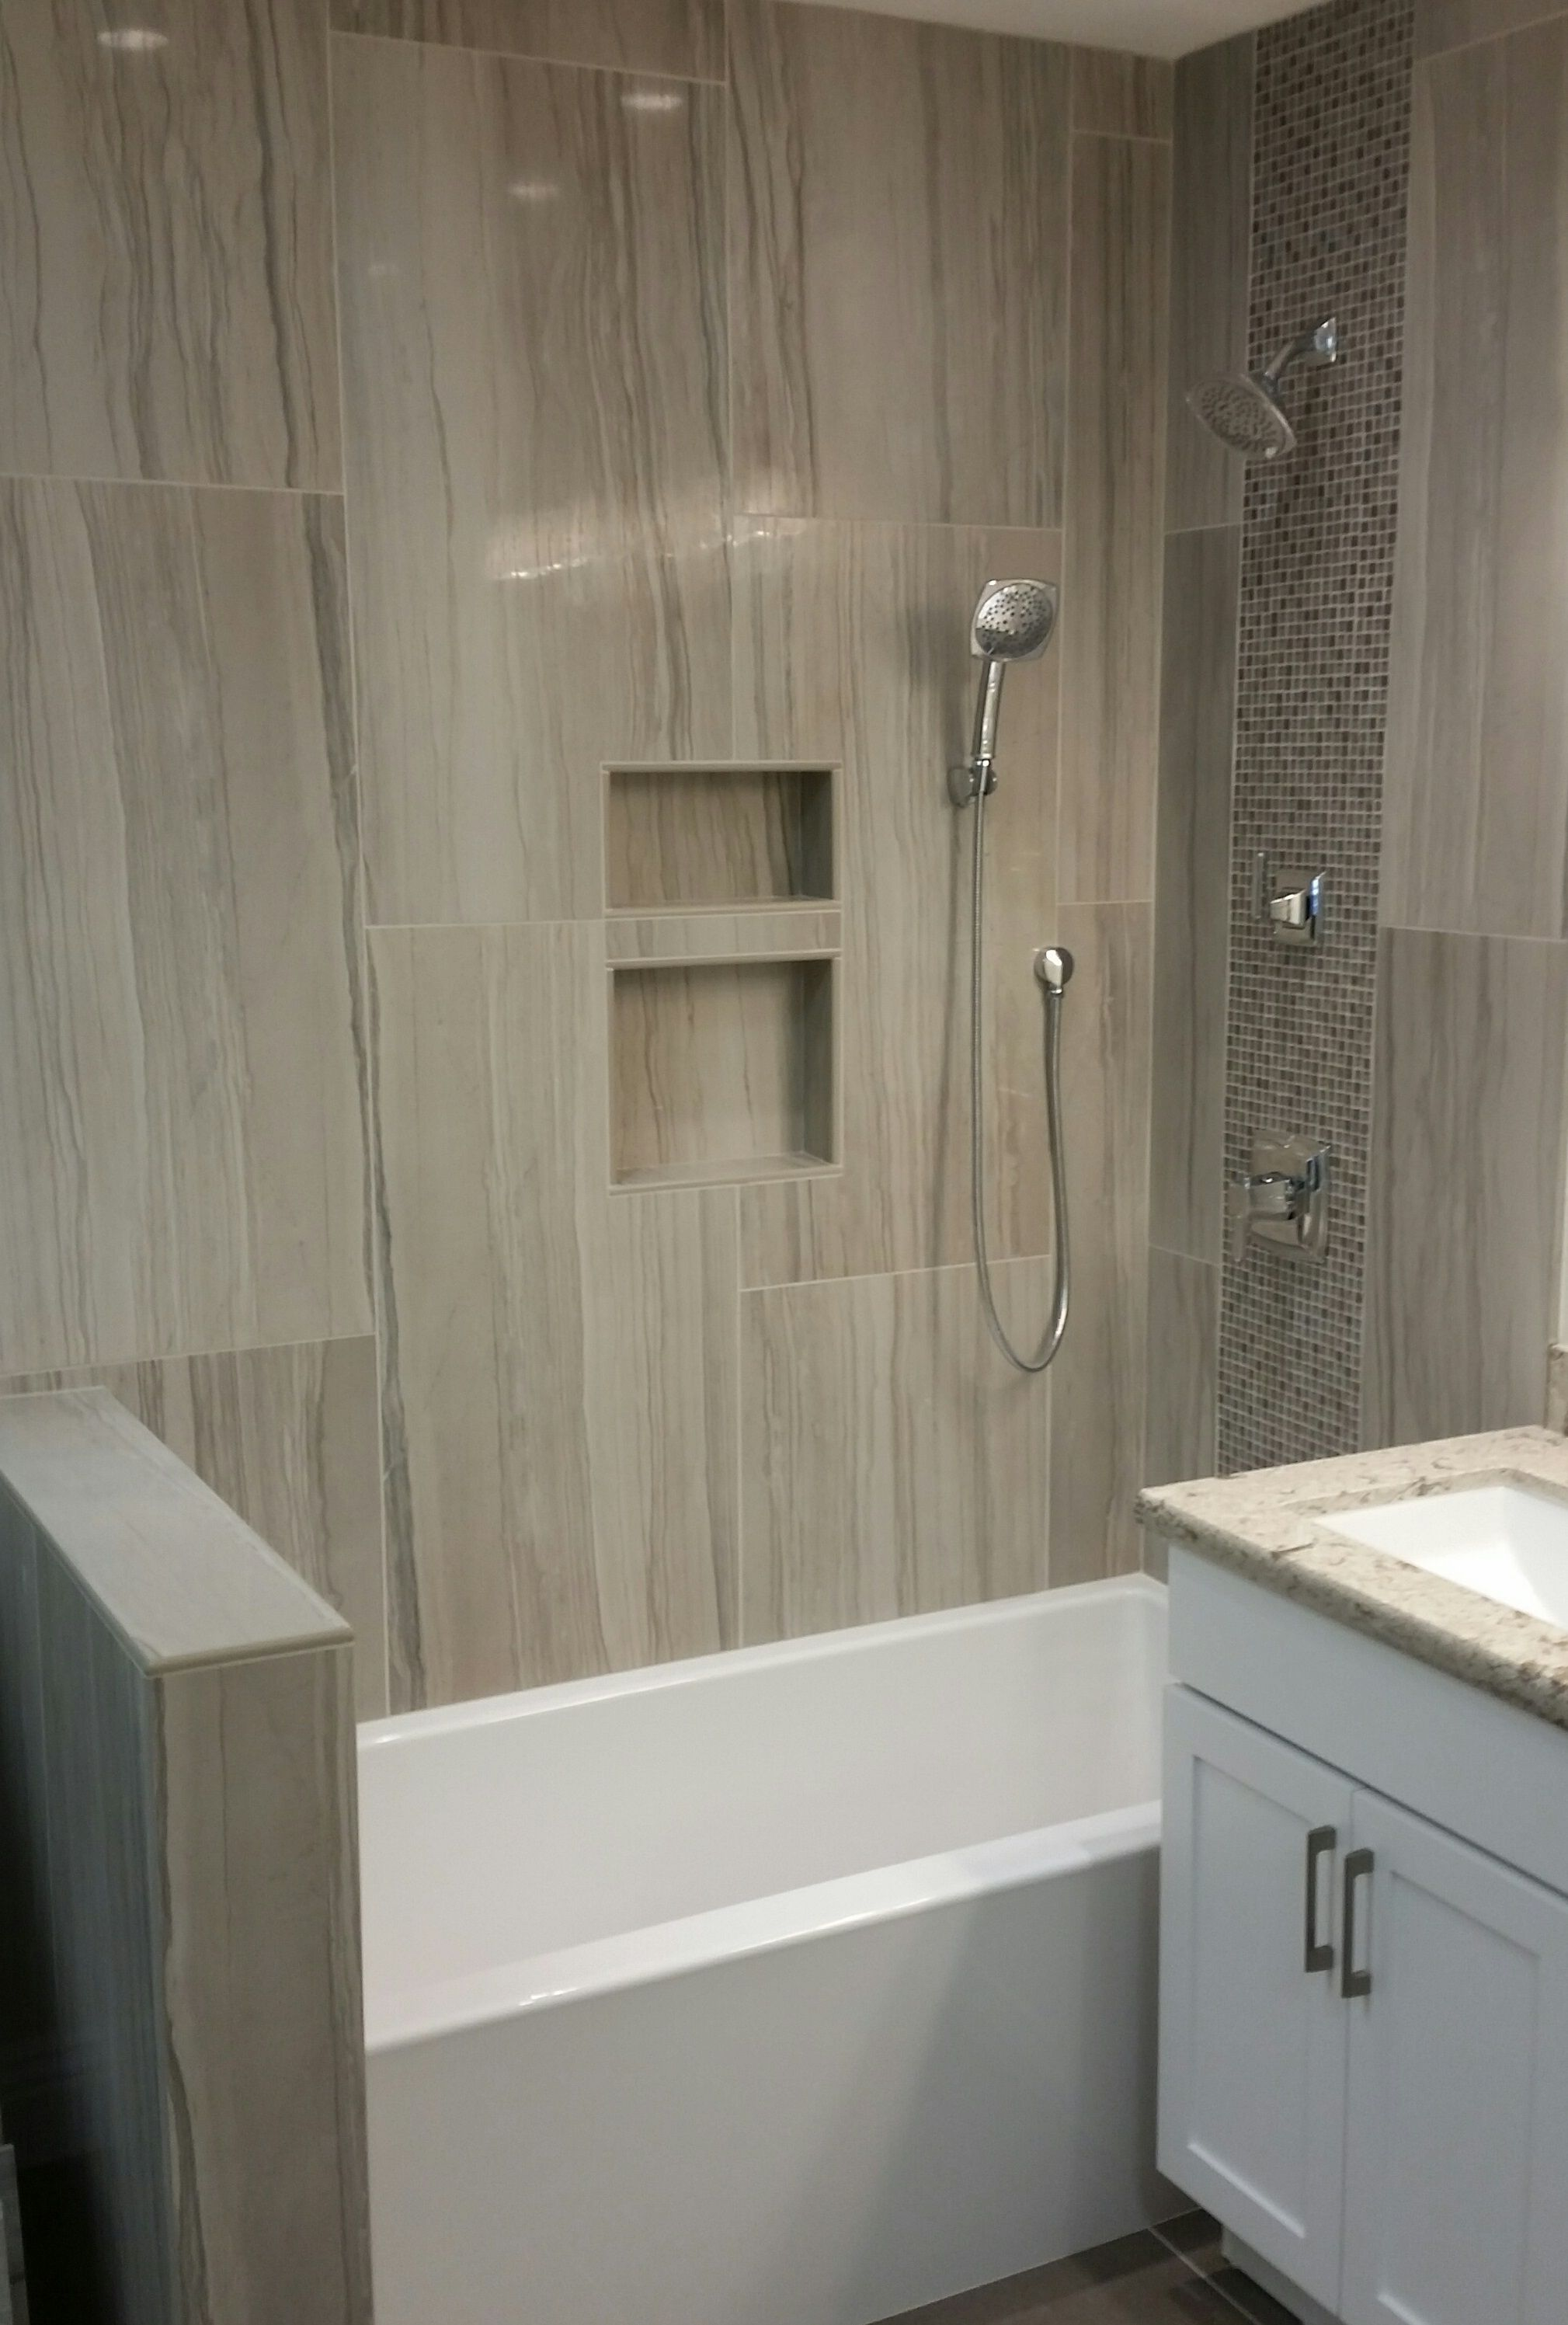 Bathroom Design And Installation Amazing Tiletuesday Features An Installation Of Our Action Drift And Review